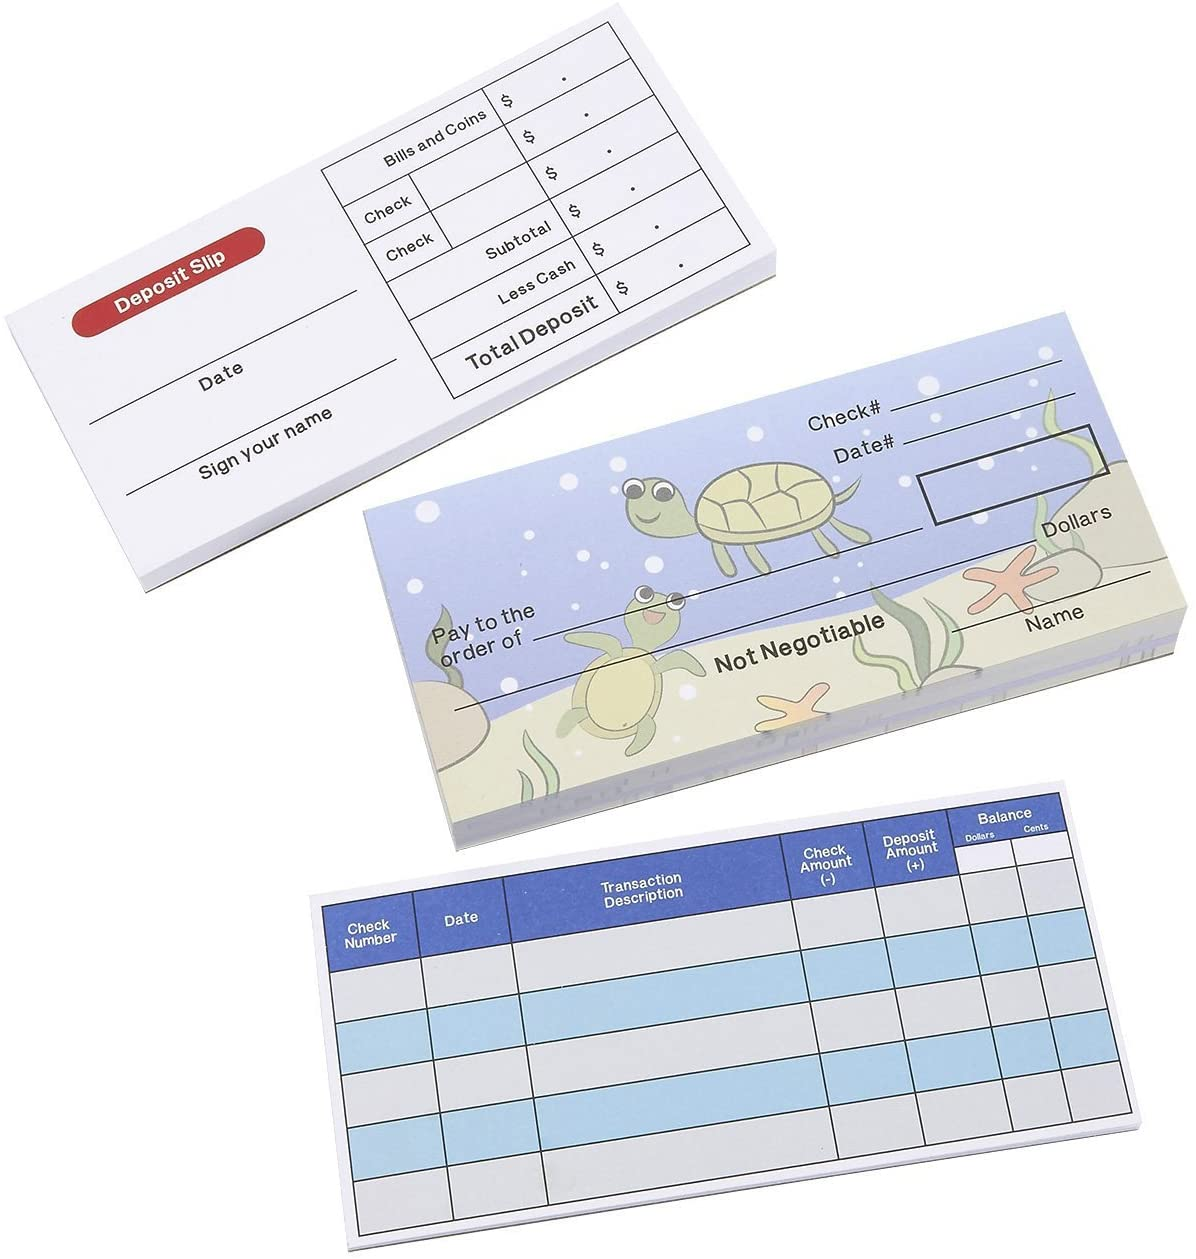 Blue Panda Play Check Set - Educational Toy for Kids - Promotes Financial Literacy - Includes Checkbook, Deposit Slip, Check Register, 150 Sheets Total, Underwater Theme